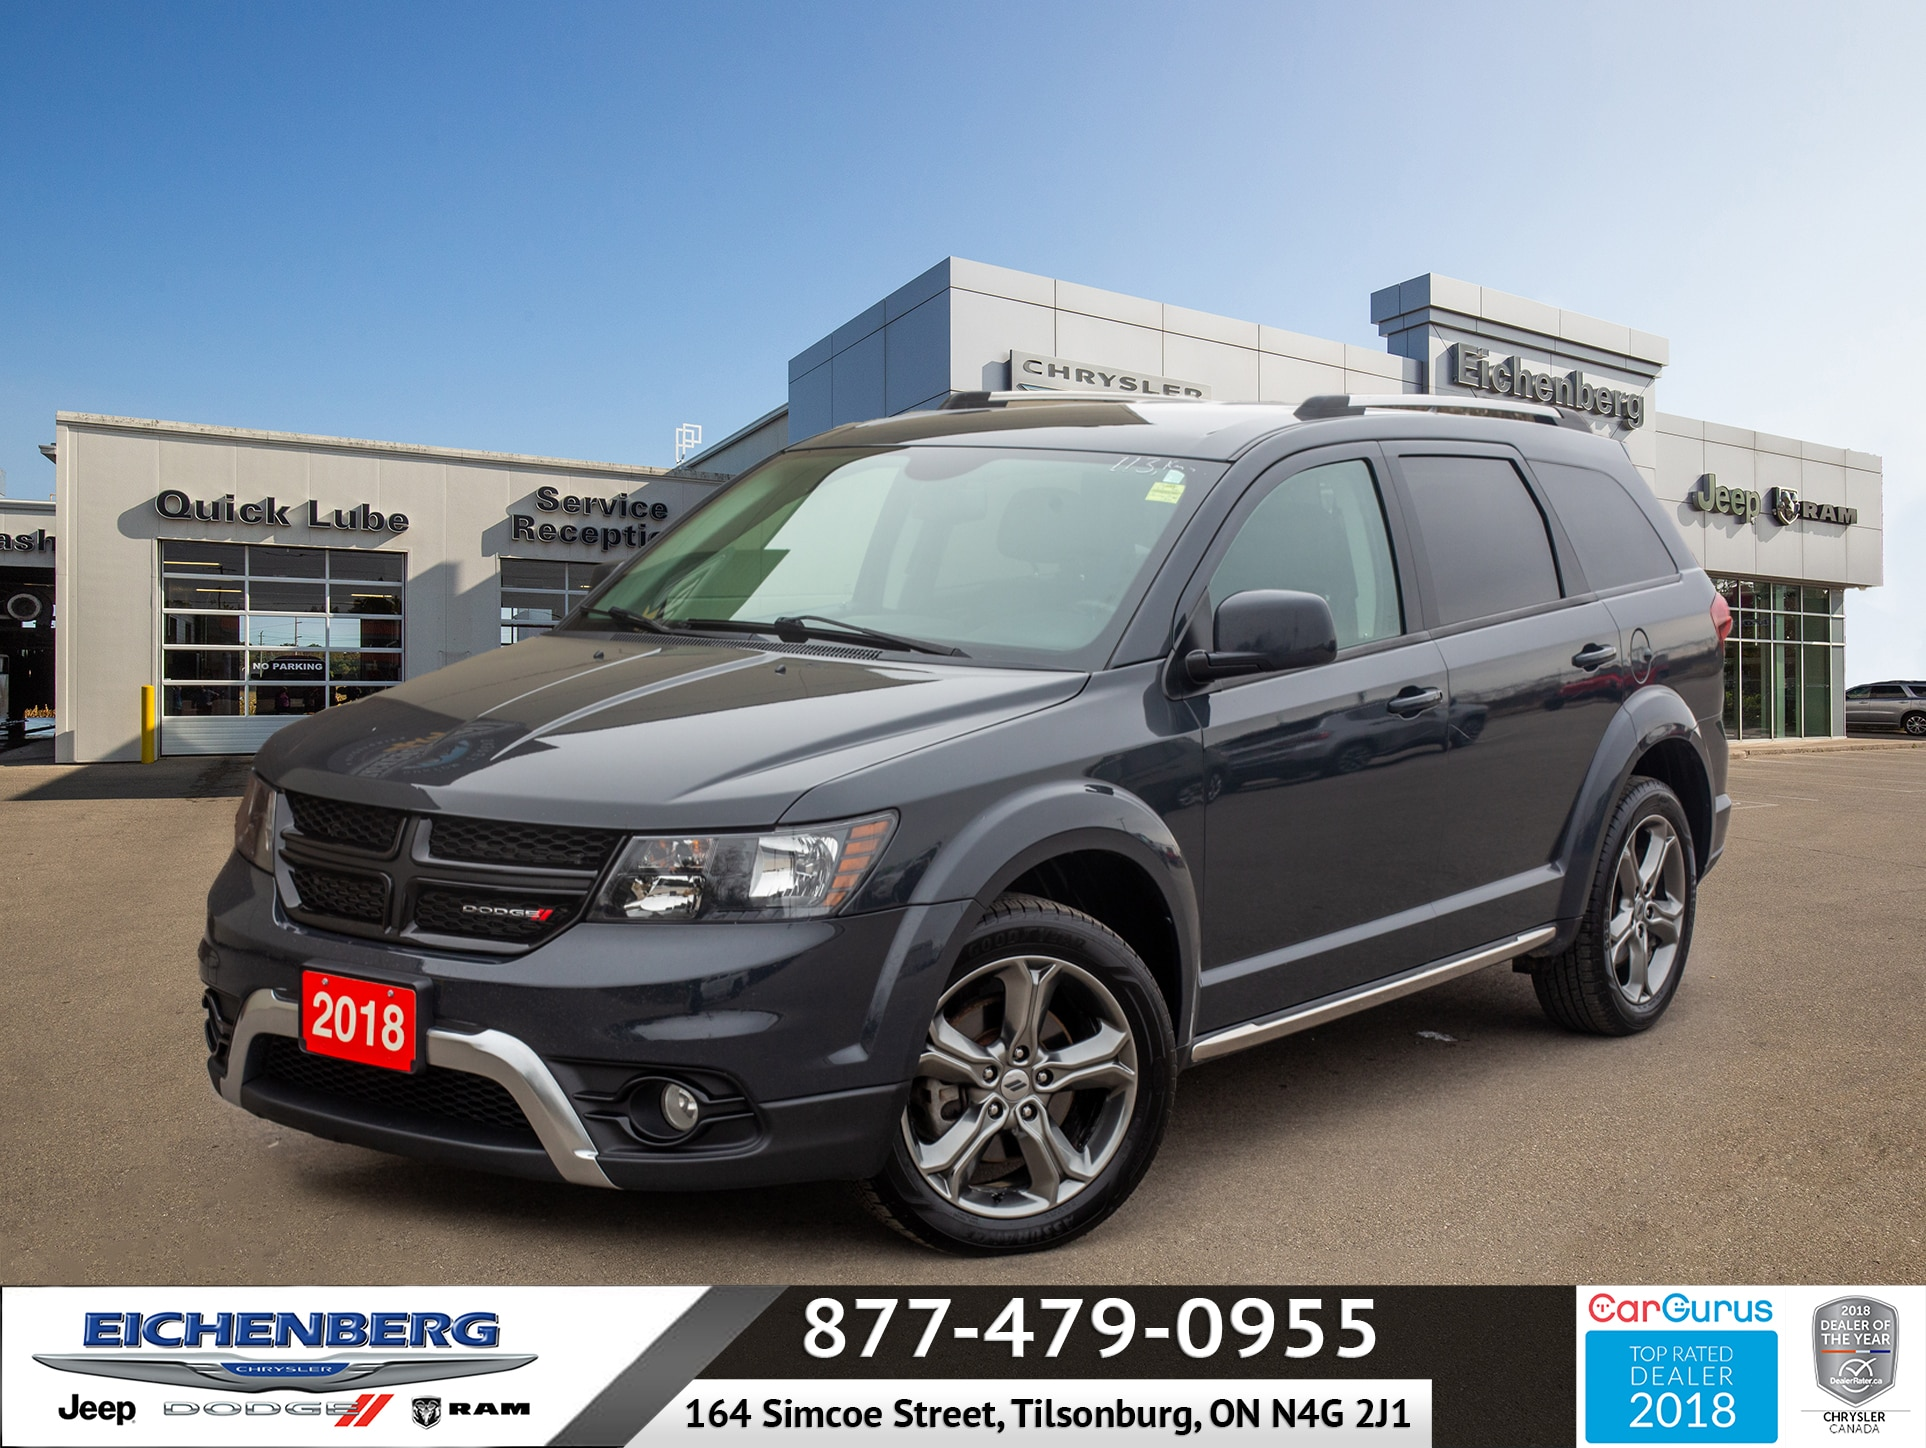 used 2018 Dodge Journey car, priced at $20,999